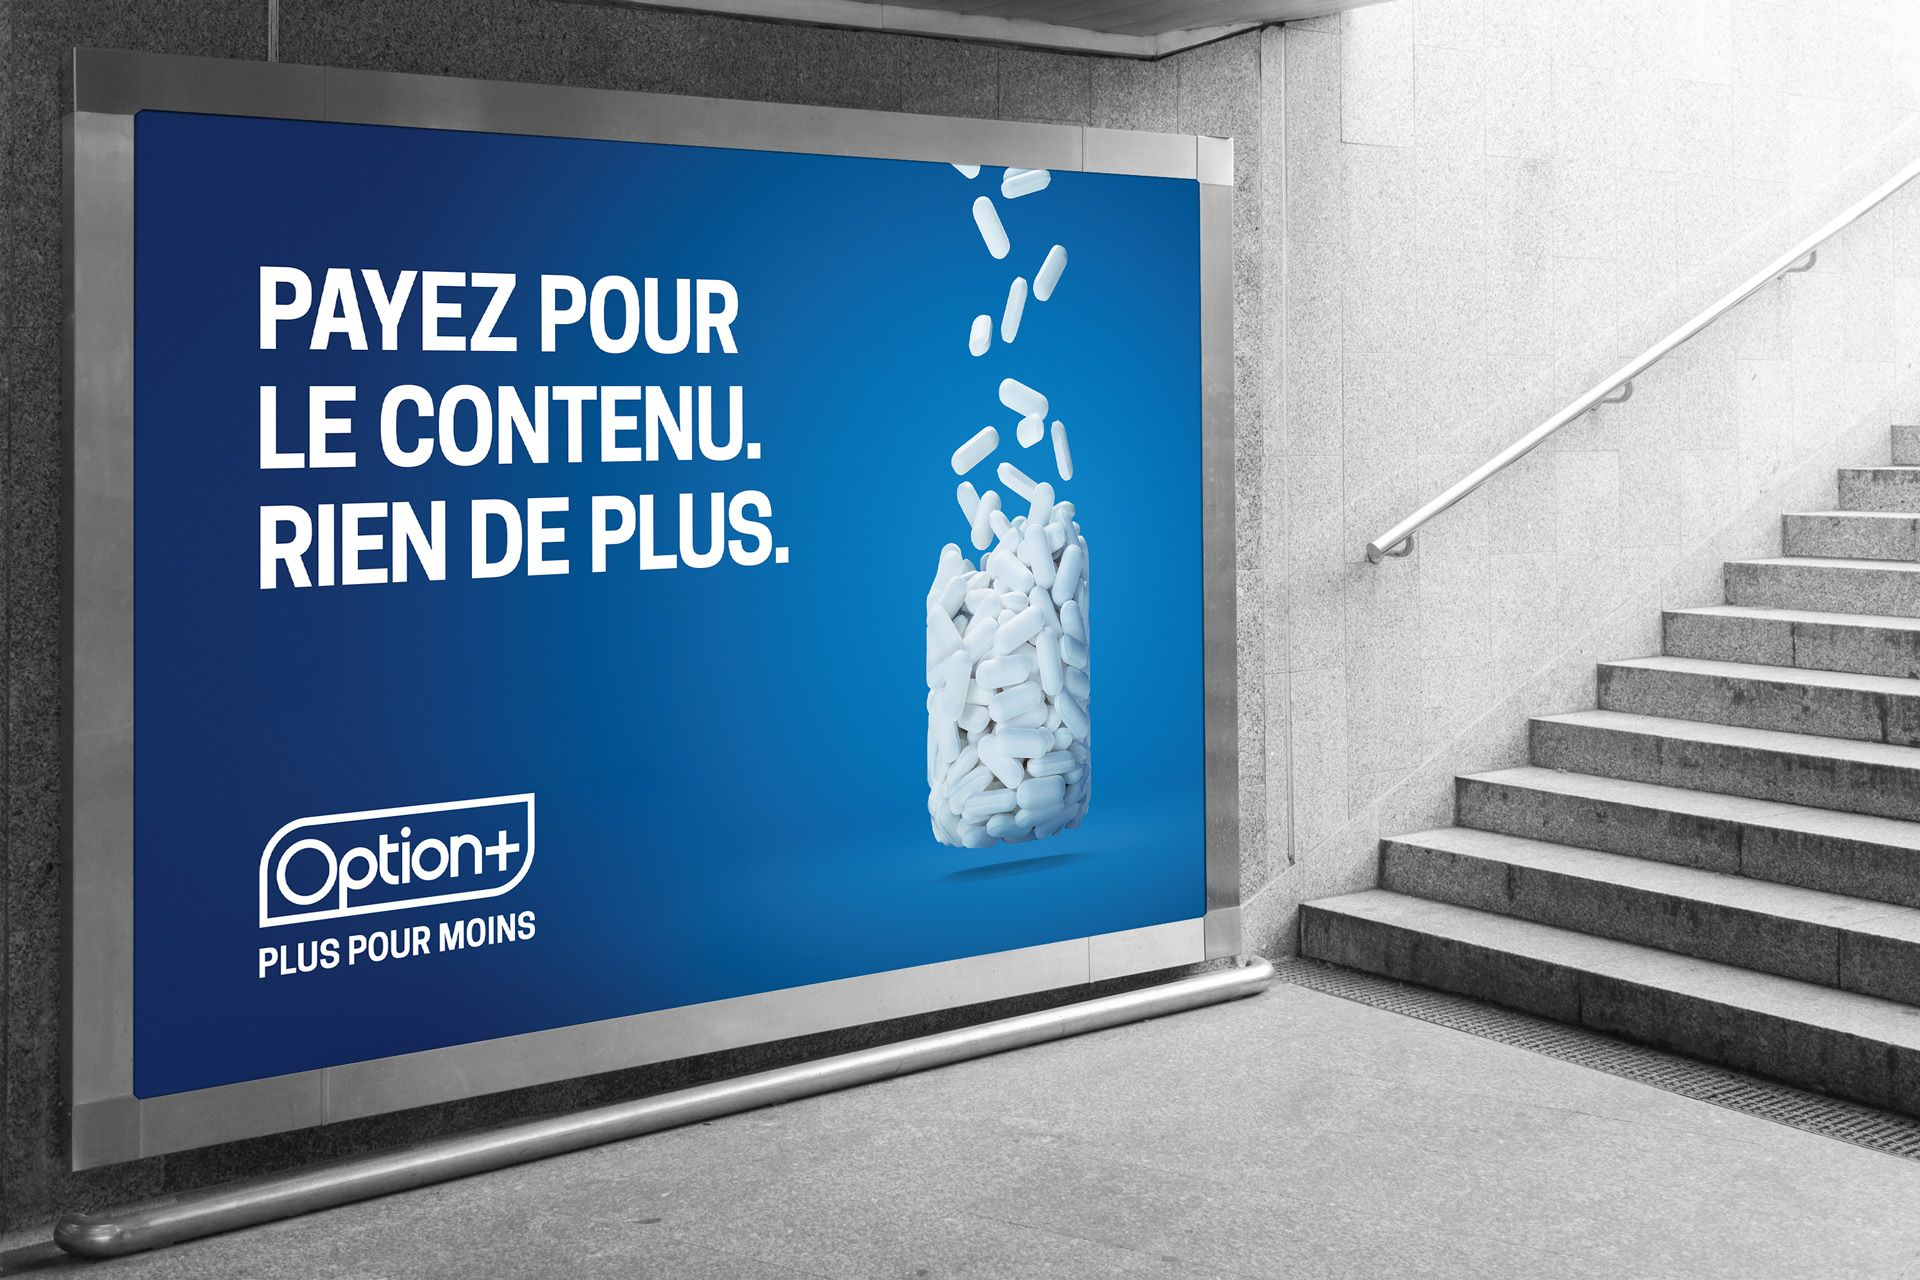 mockup of poster of white pills falling from the sky forming the shape of a bottle on blue background by Mathieu Lévesque for Uniprix